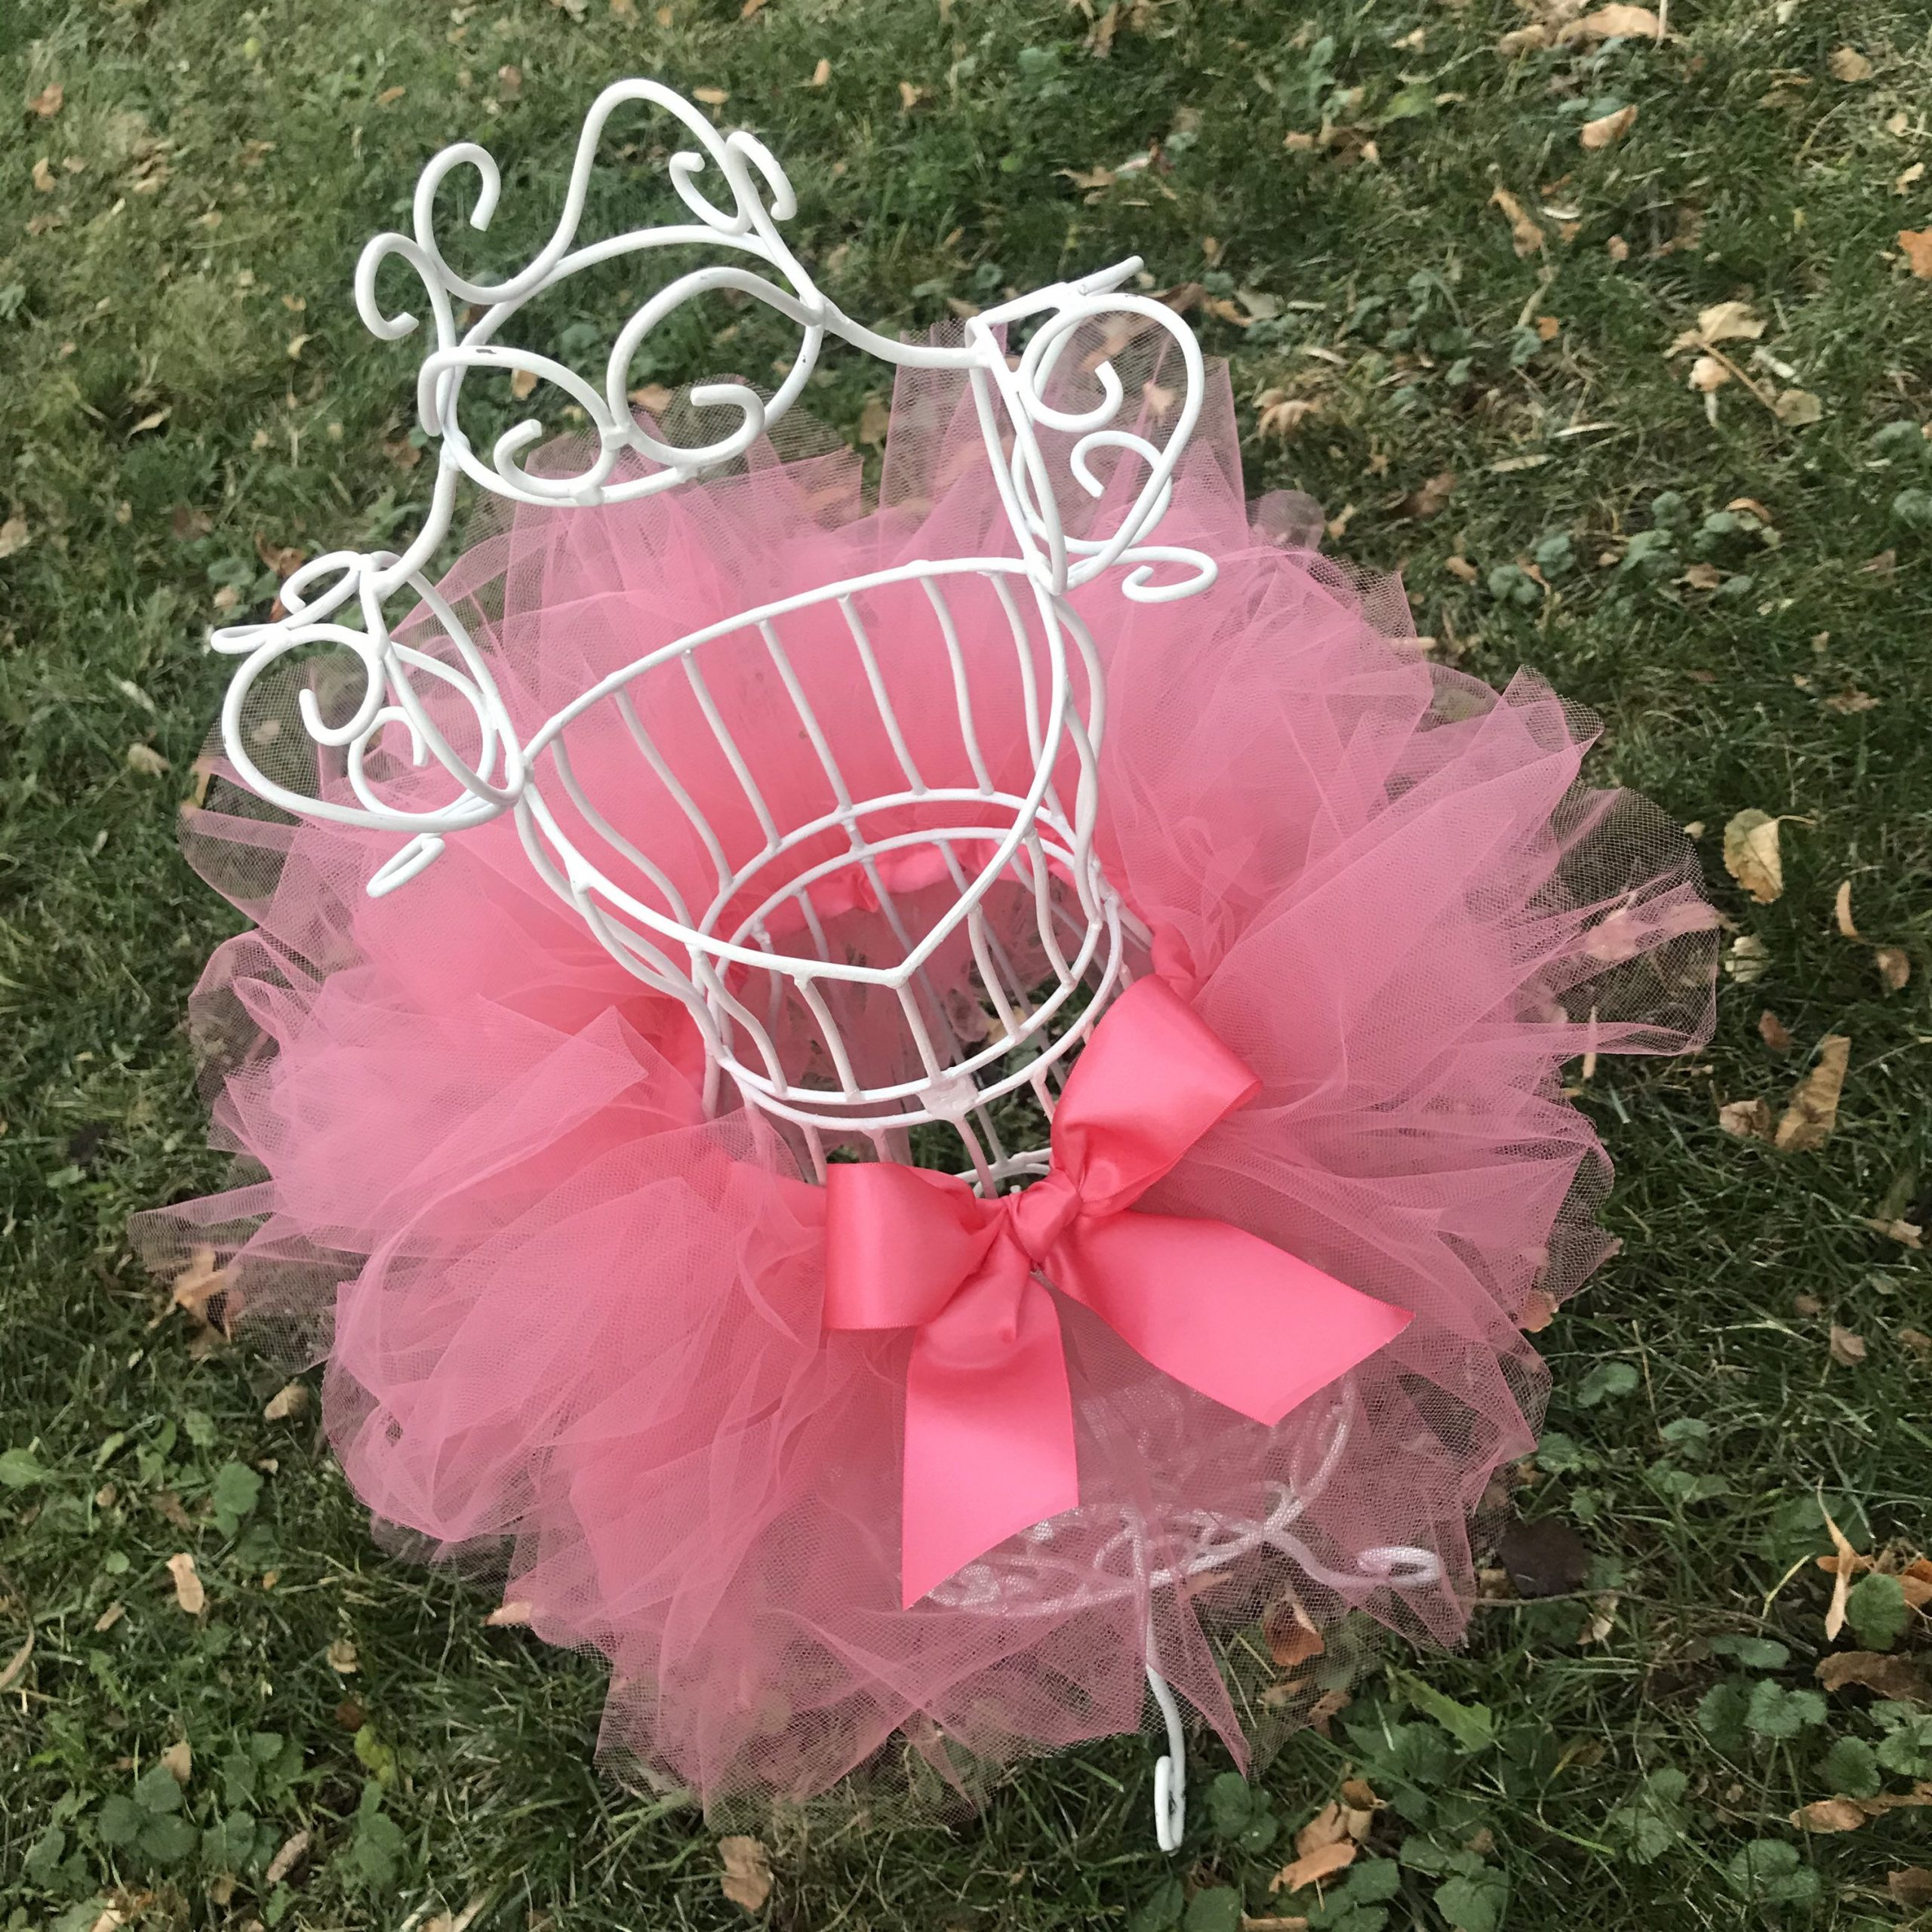 Coral Baby Tutu Fairy Costume Newborn Infant Shower Gift Set Toddler Girl Half Birthday Outfit or First Birthday Cake Smash Photo Shoot Prop